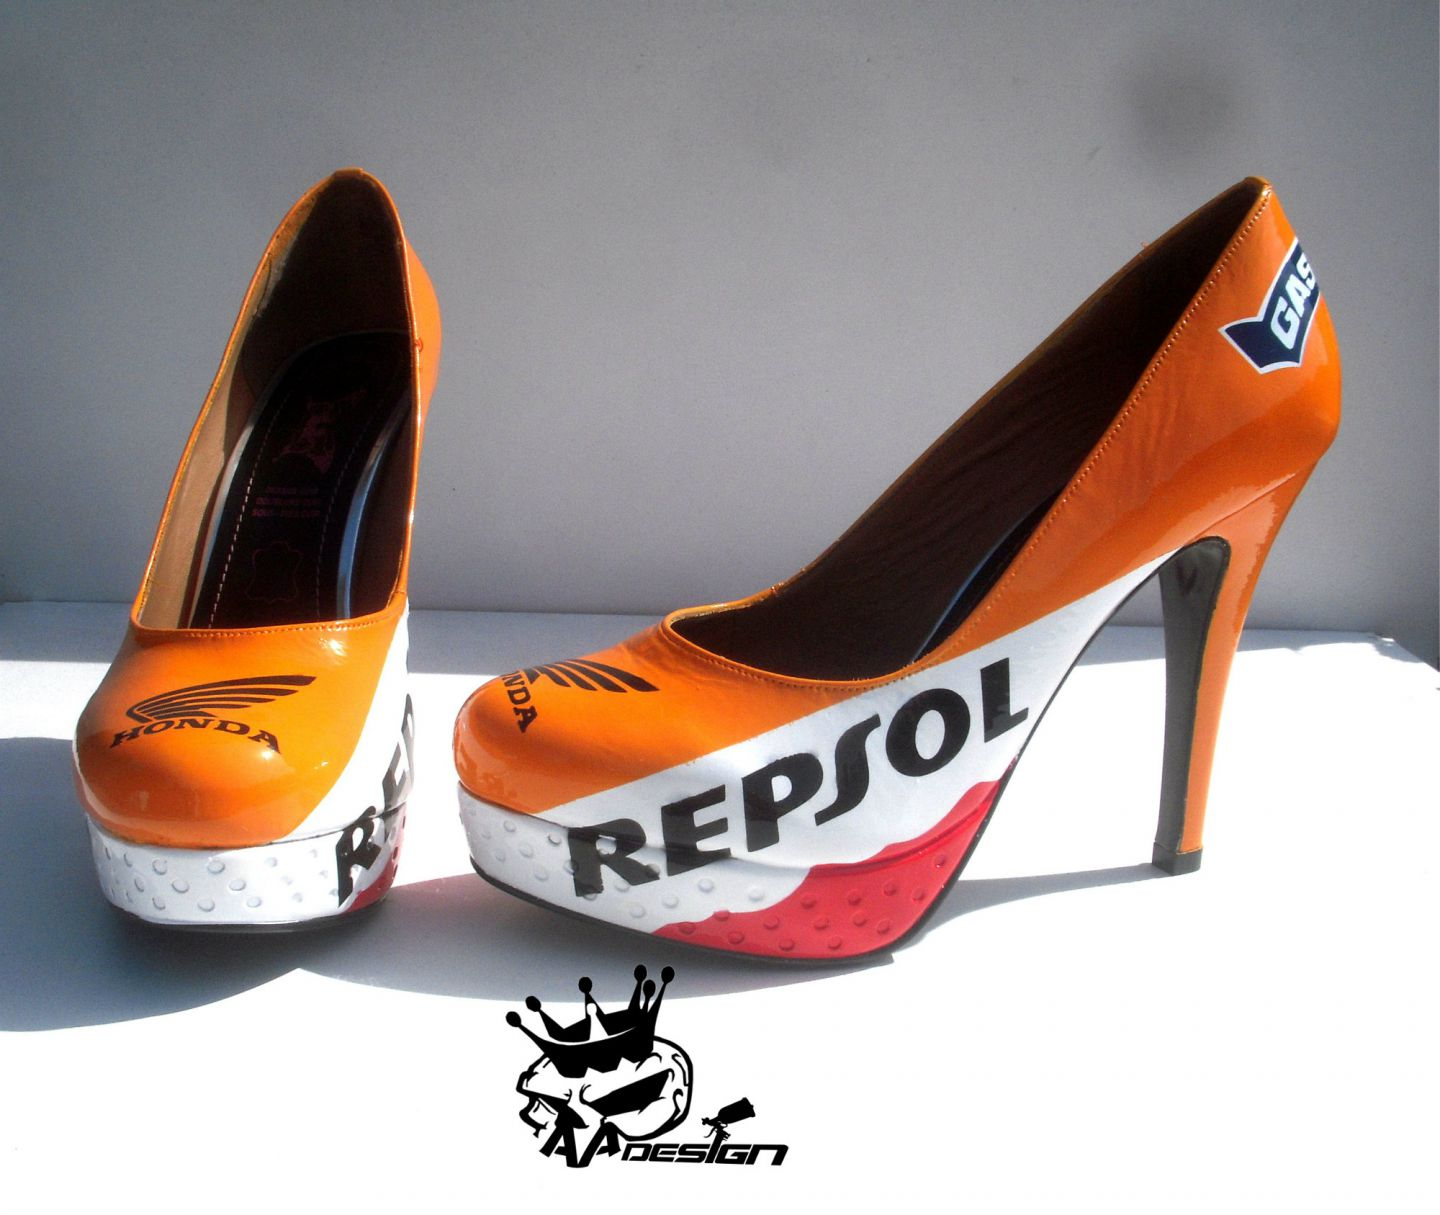 Bike Branded High Heels Look Very Sexy Autoevolution